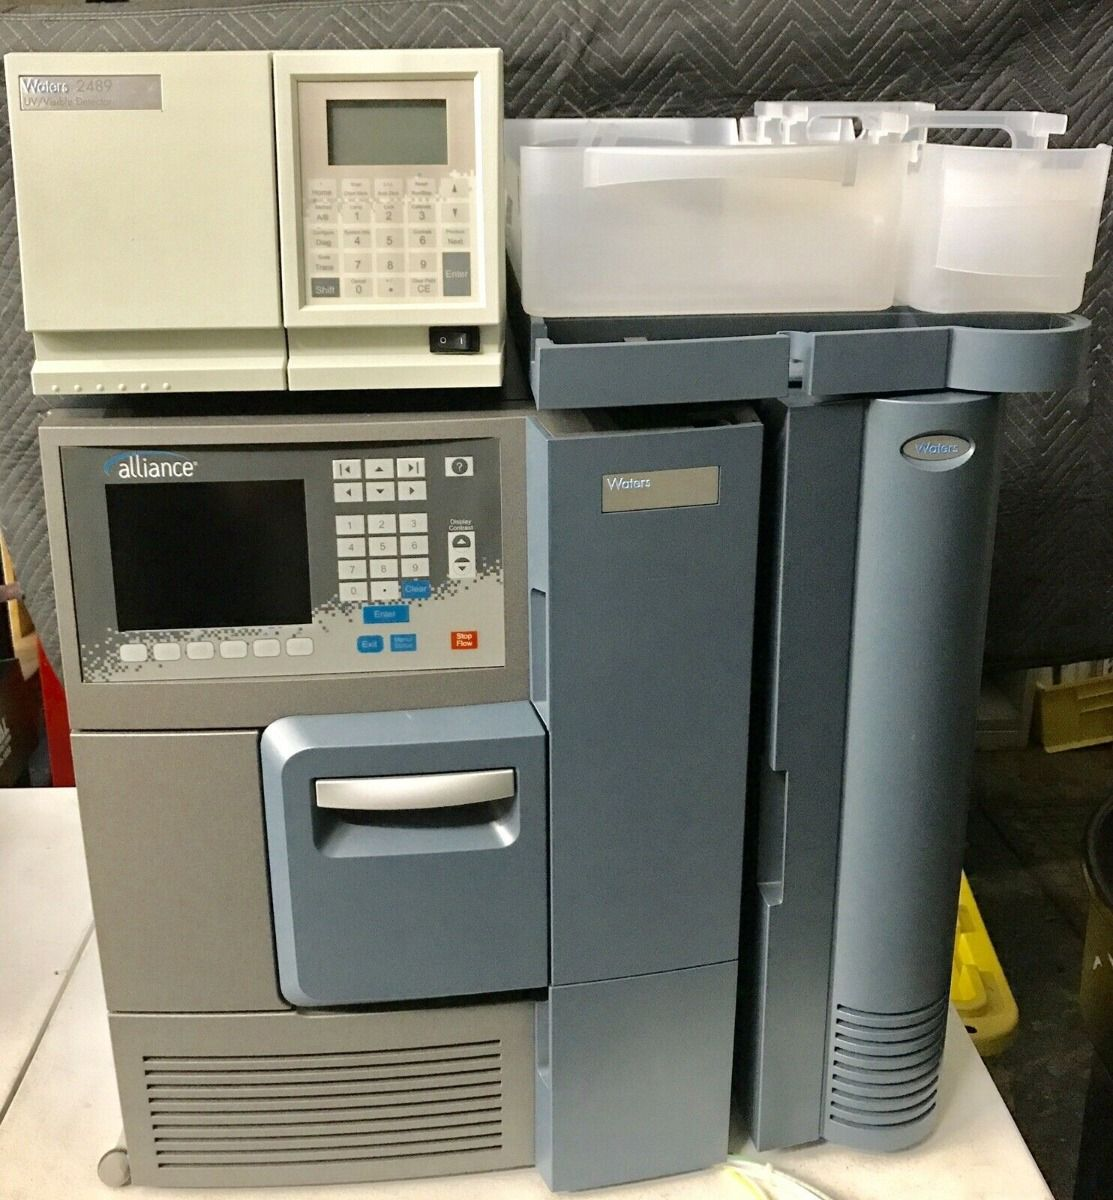 Waters e2695 Alliance, 2489 UV/Vis Detector, HPLC System